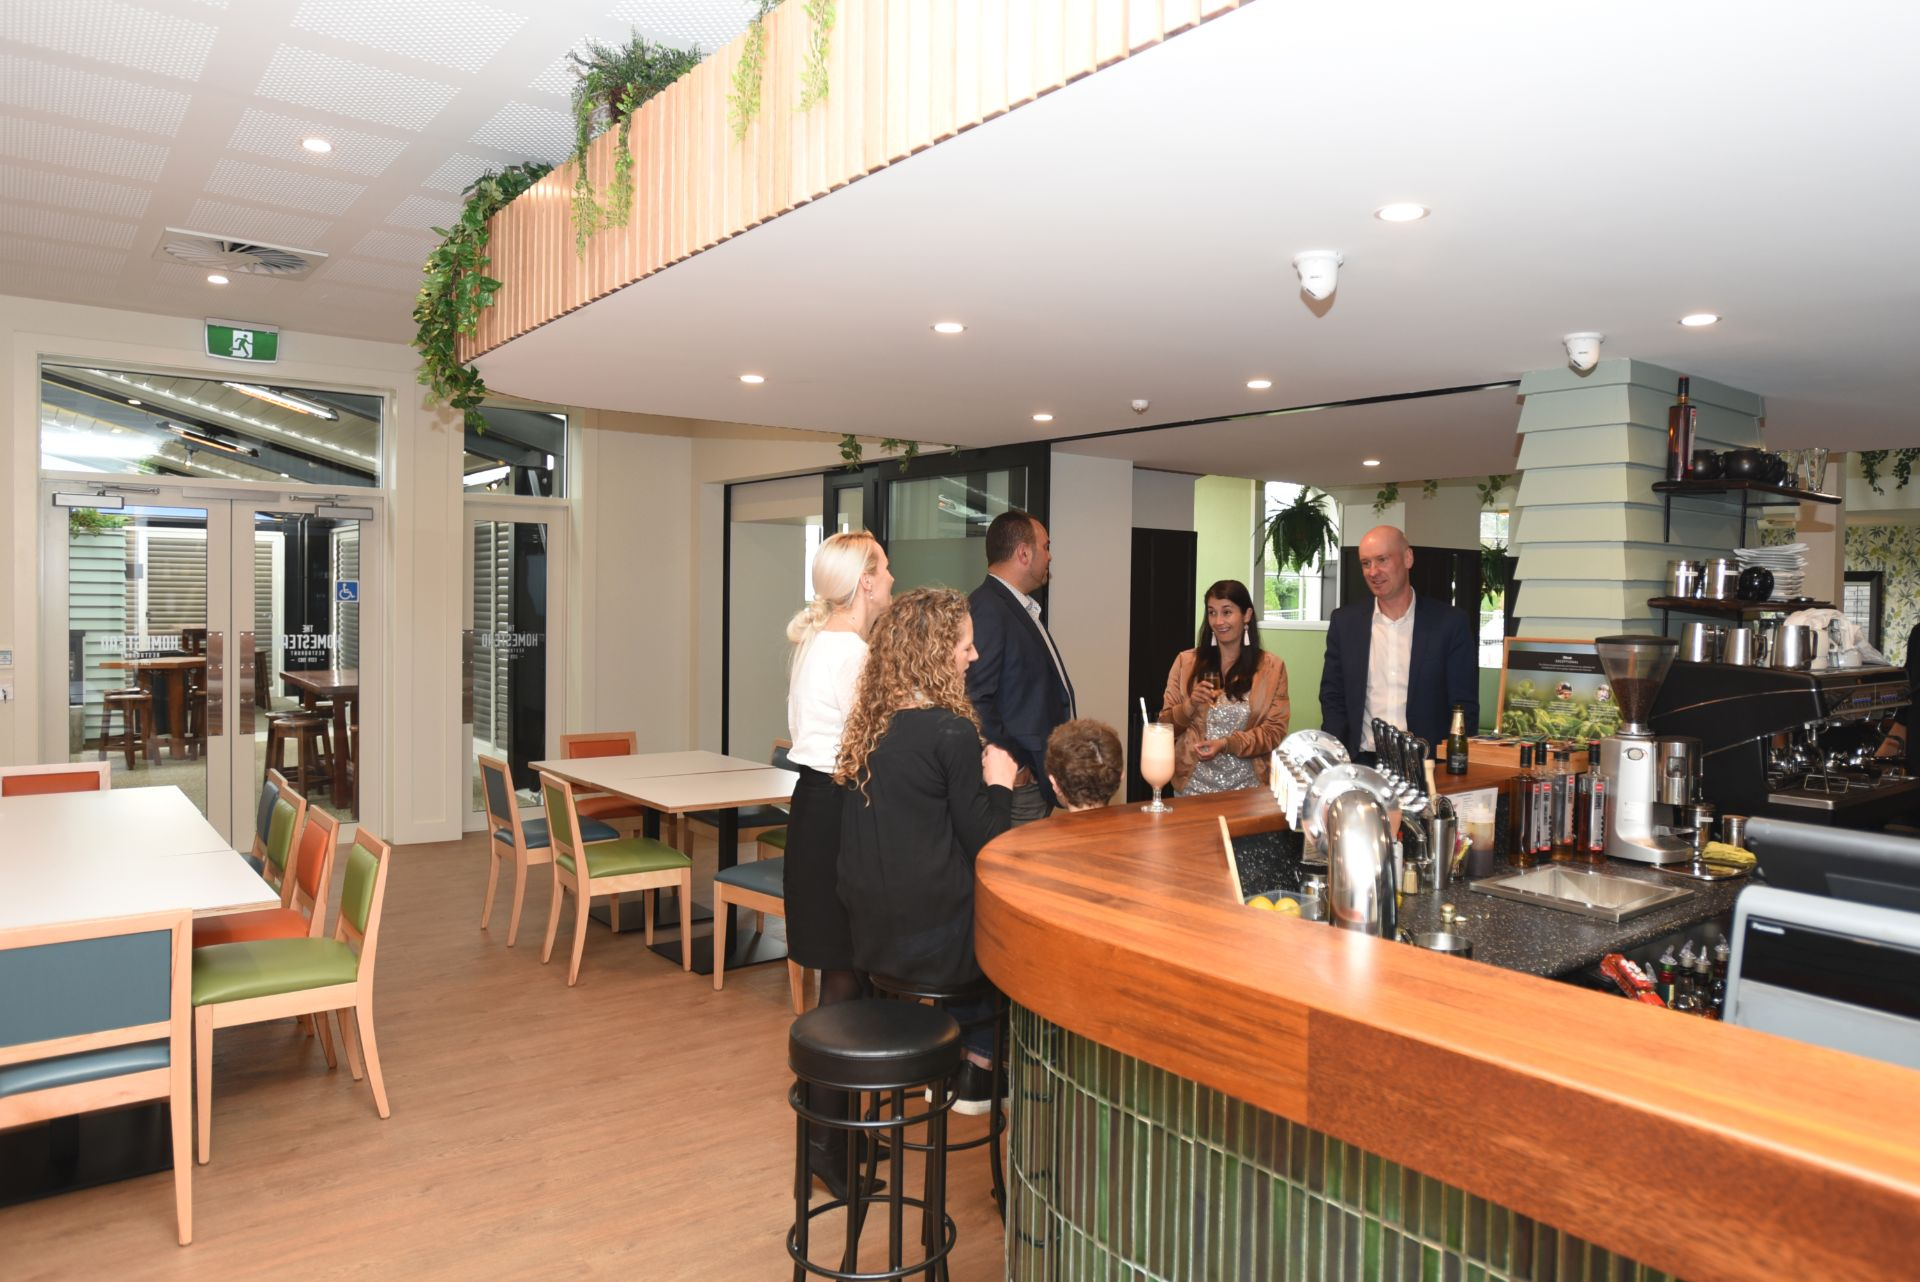 Guests enjoying the bar area at The Homestead